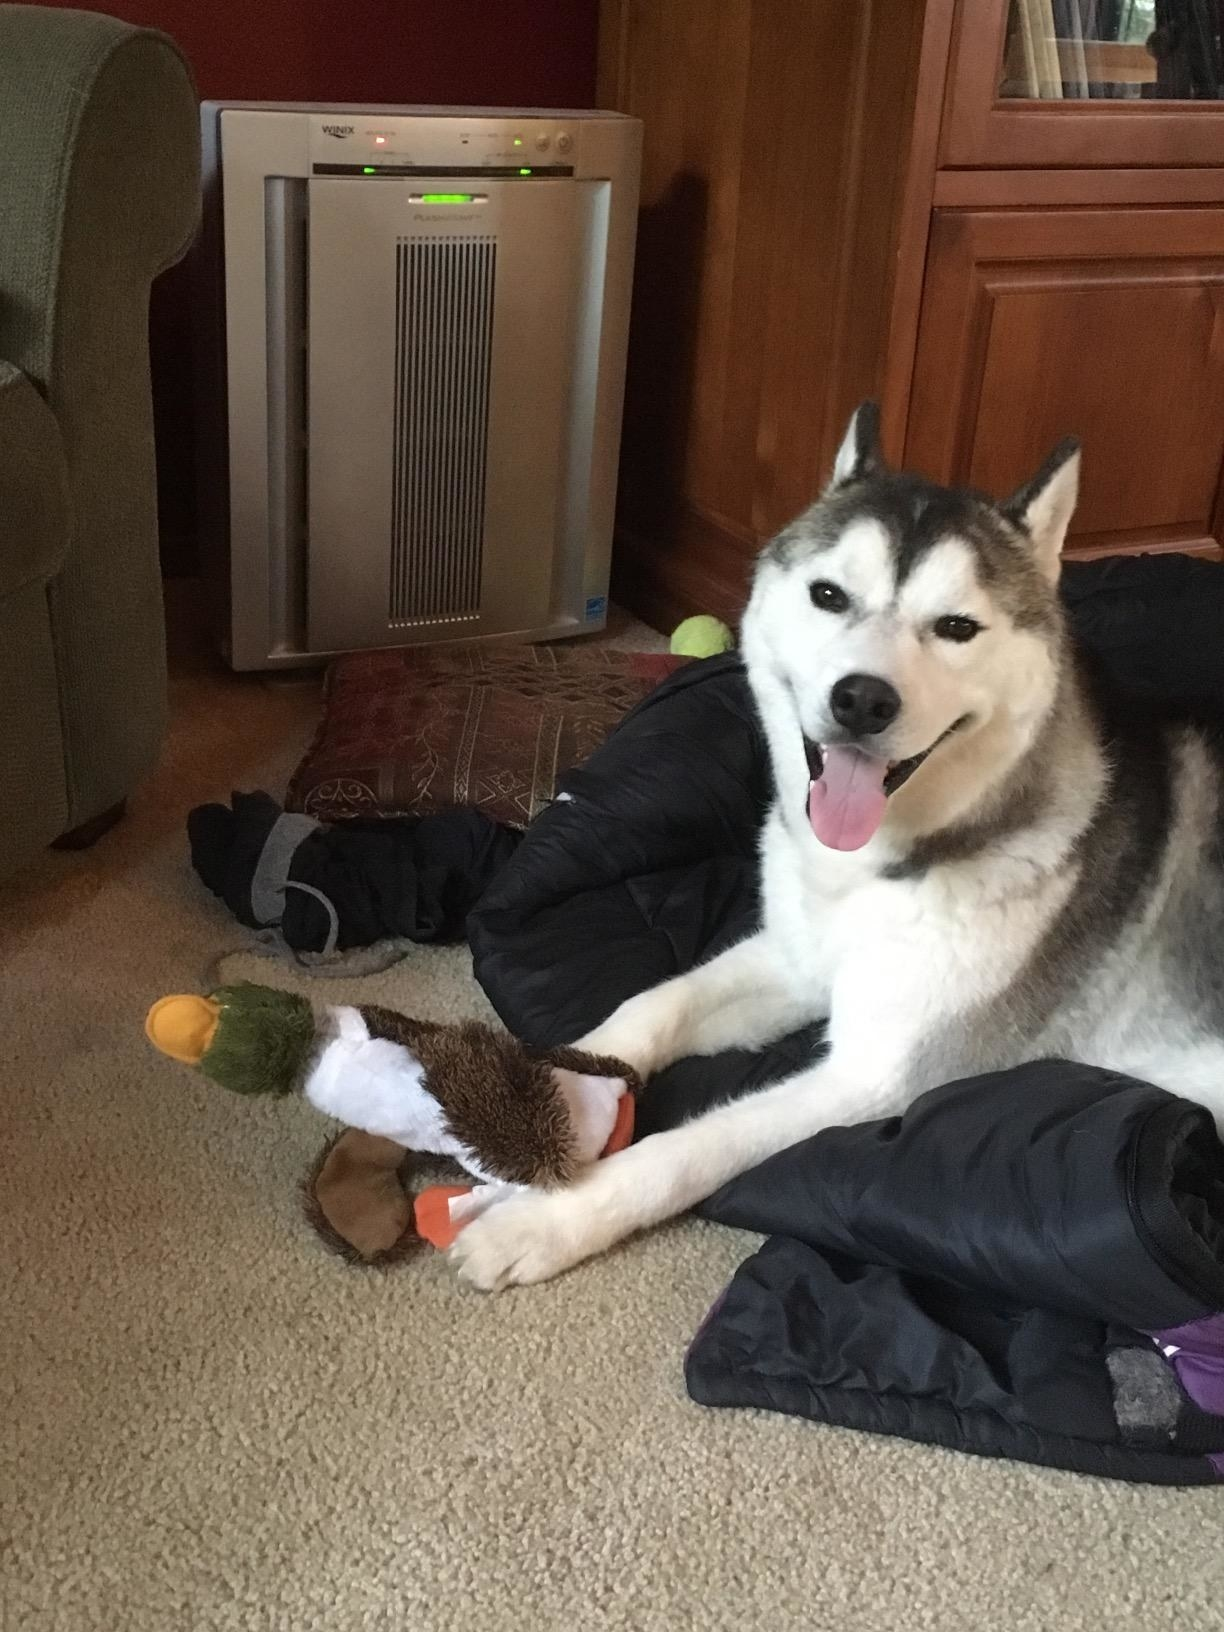 A happy dog with their duck toy